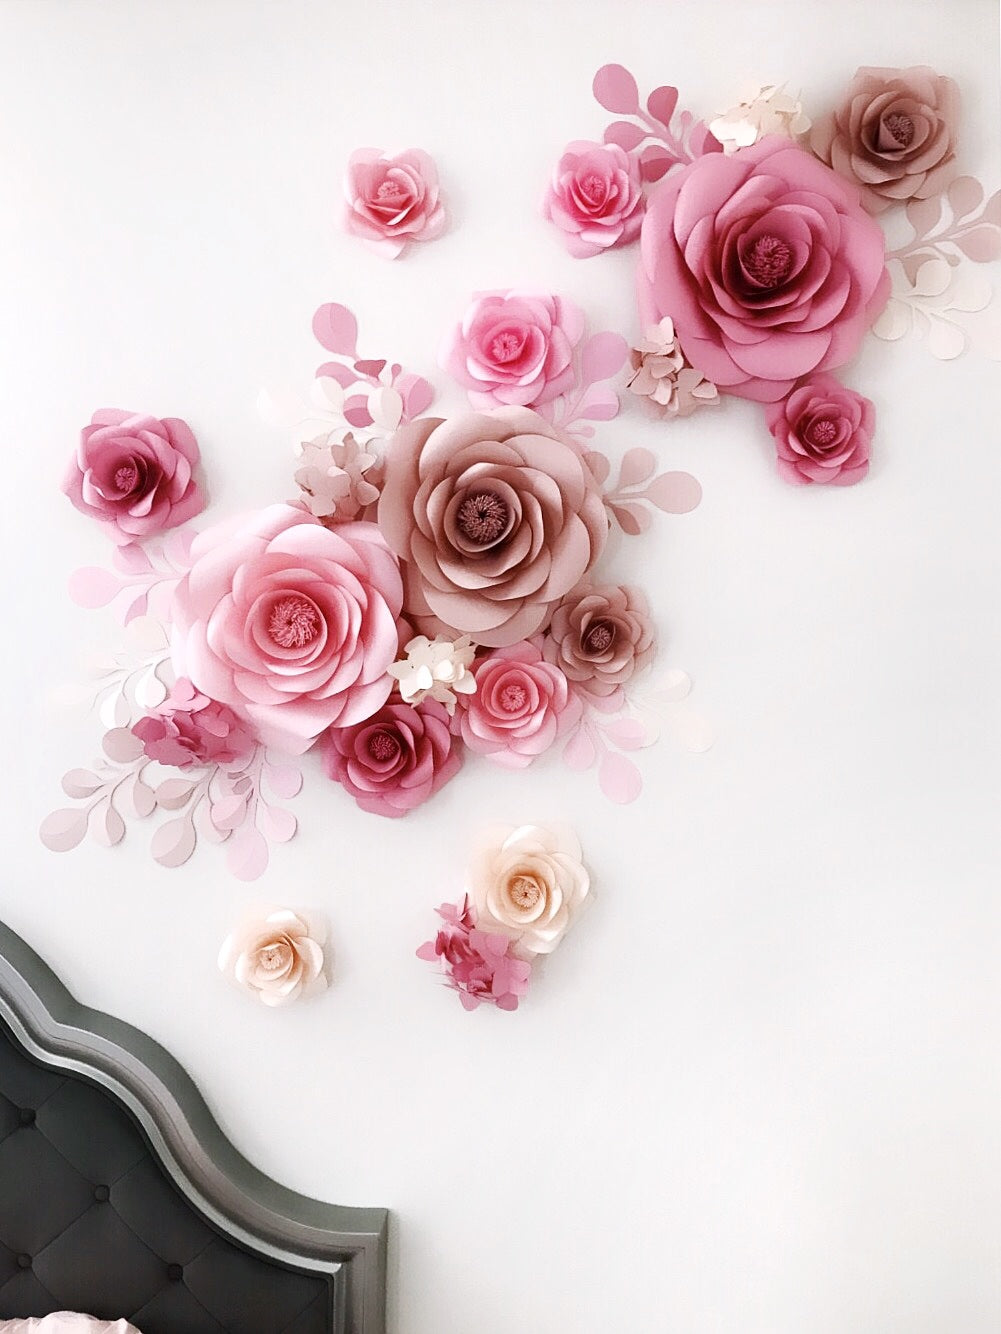 PAPER FLOWER BACKDROP - PAPER FLOWER WALL DECOR - Mio Gallery